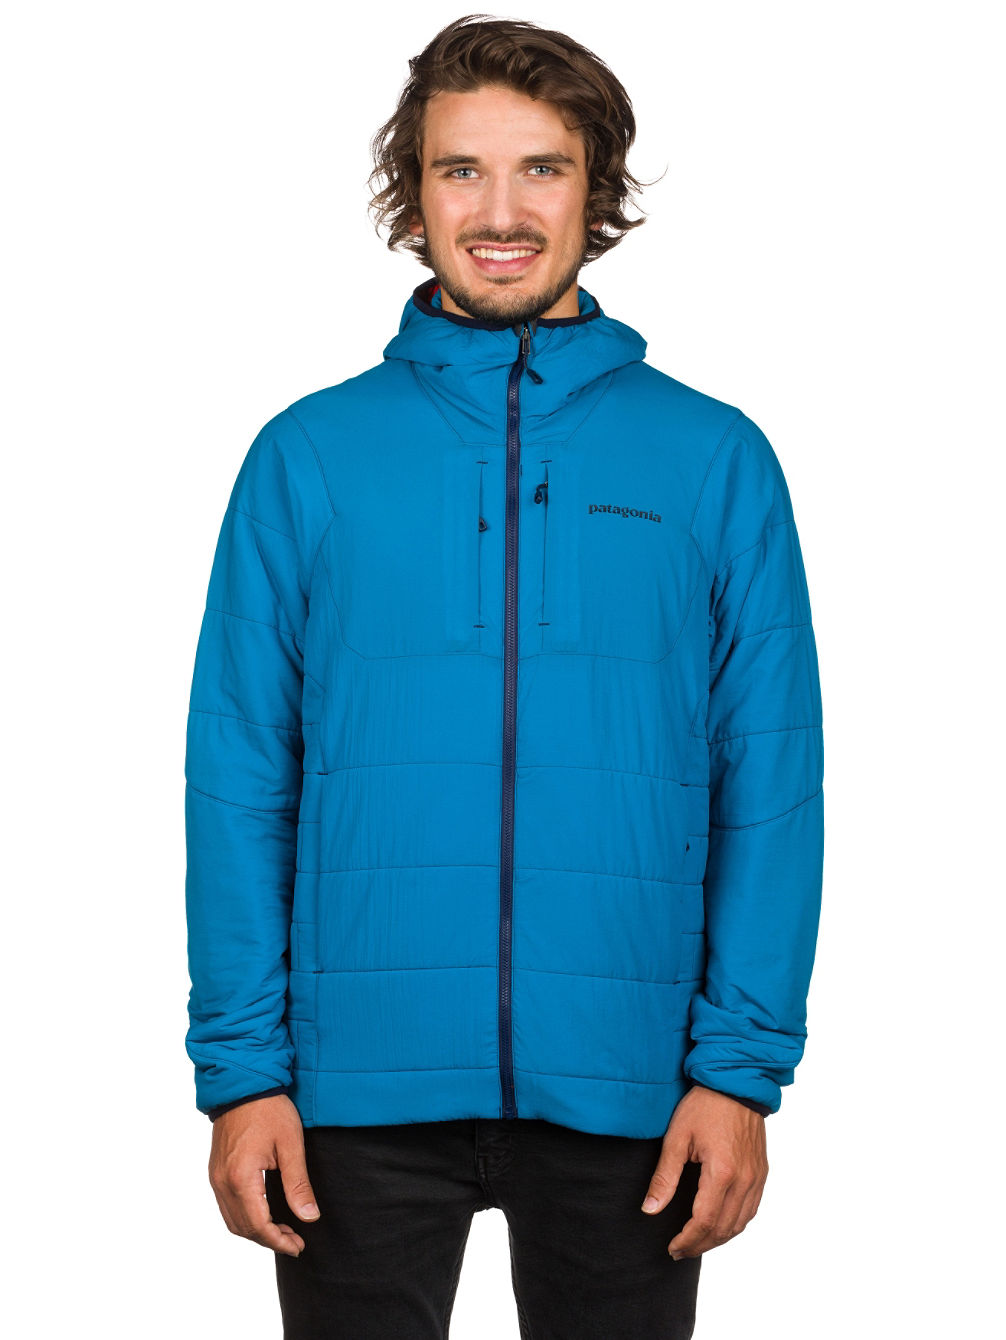 Where can i buy patagonia jackets